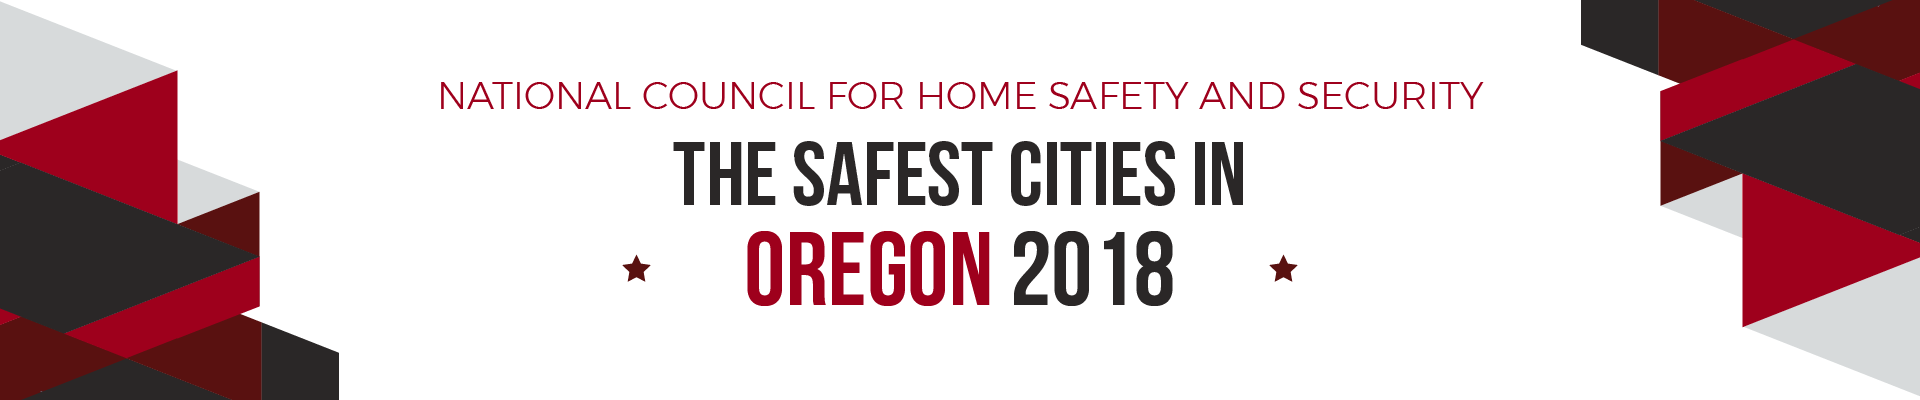 safe cities oregon 2018